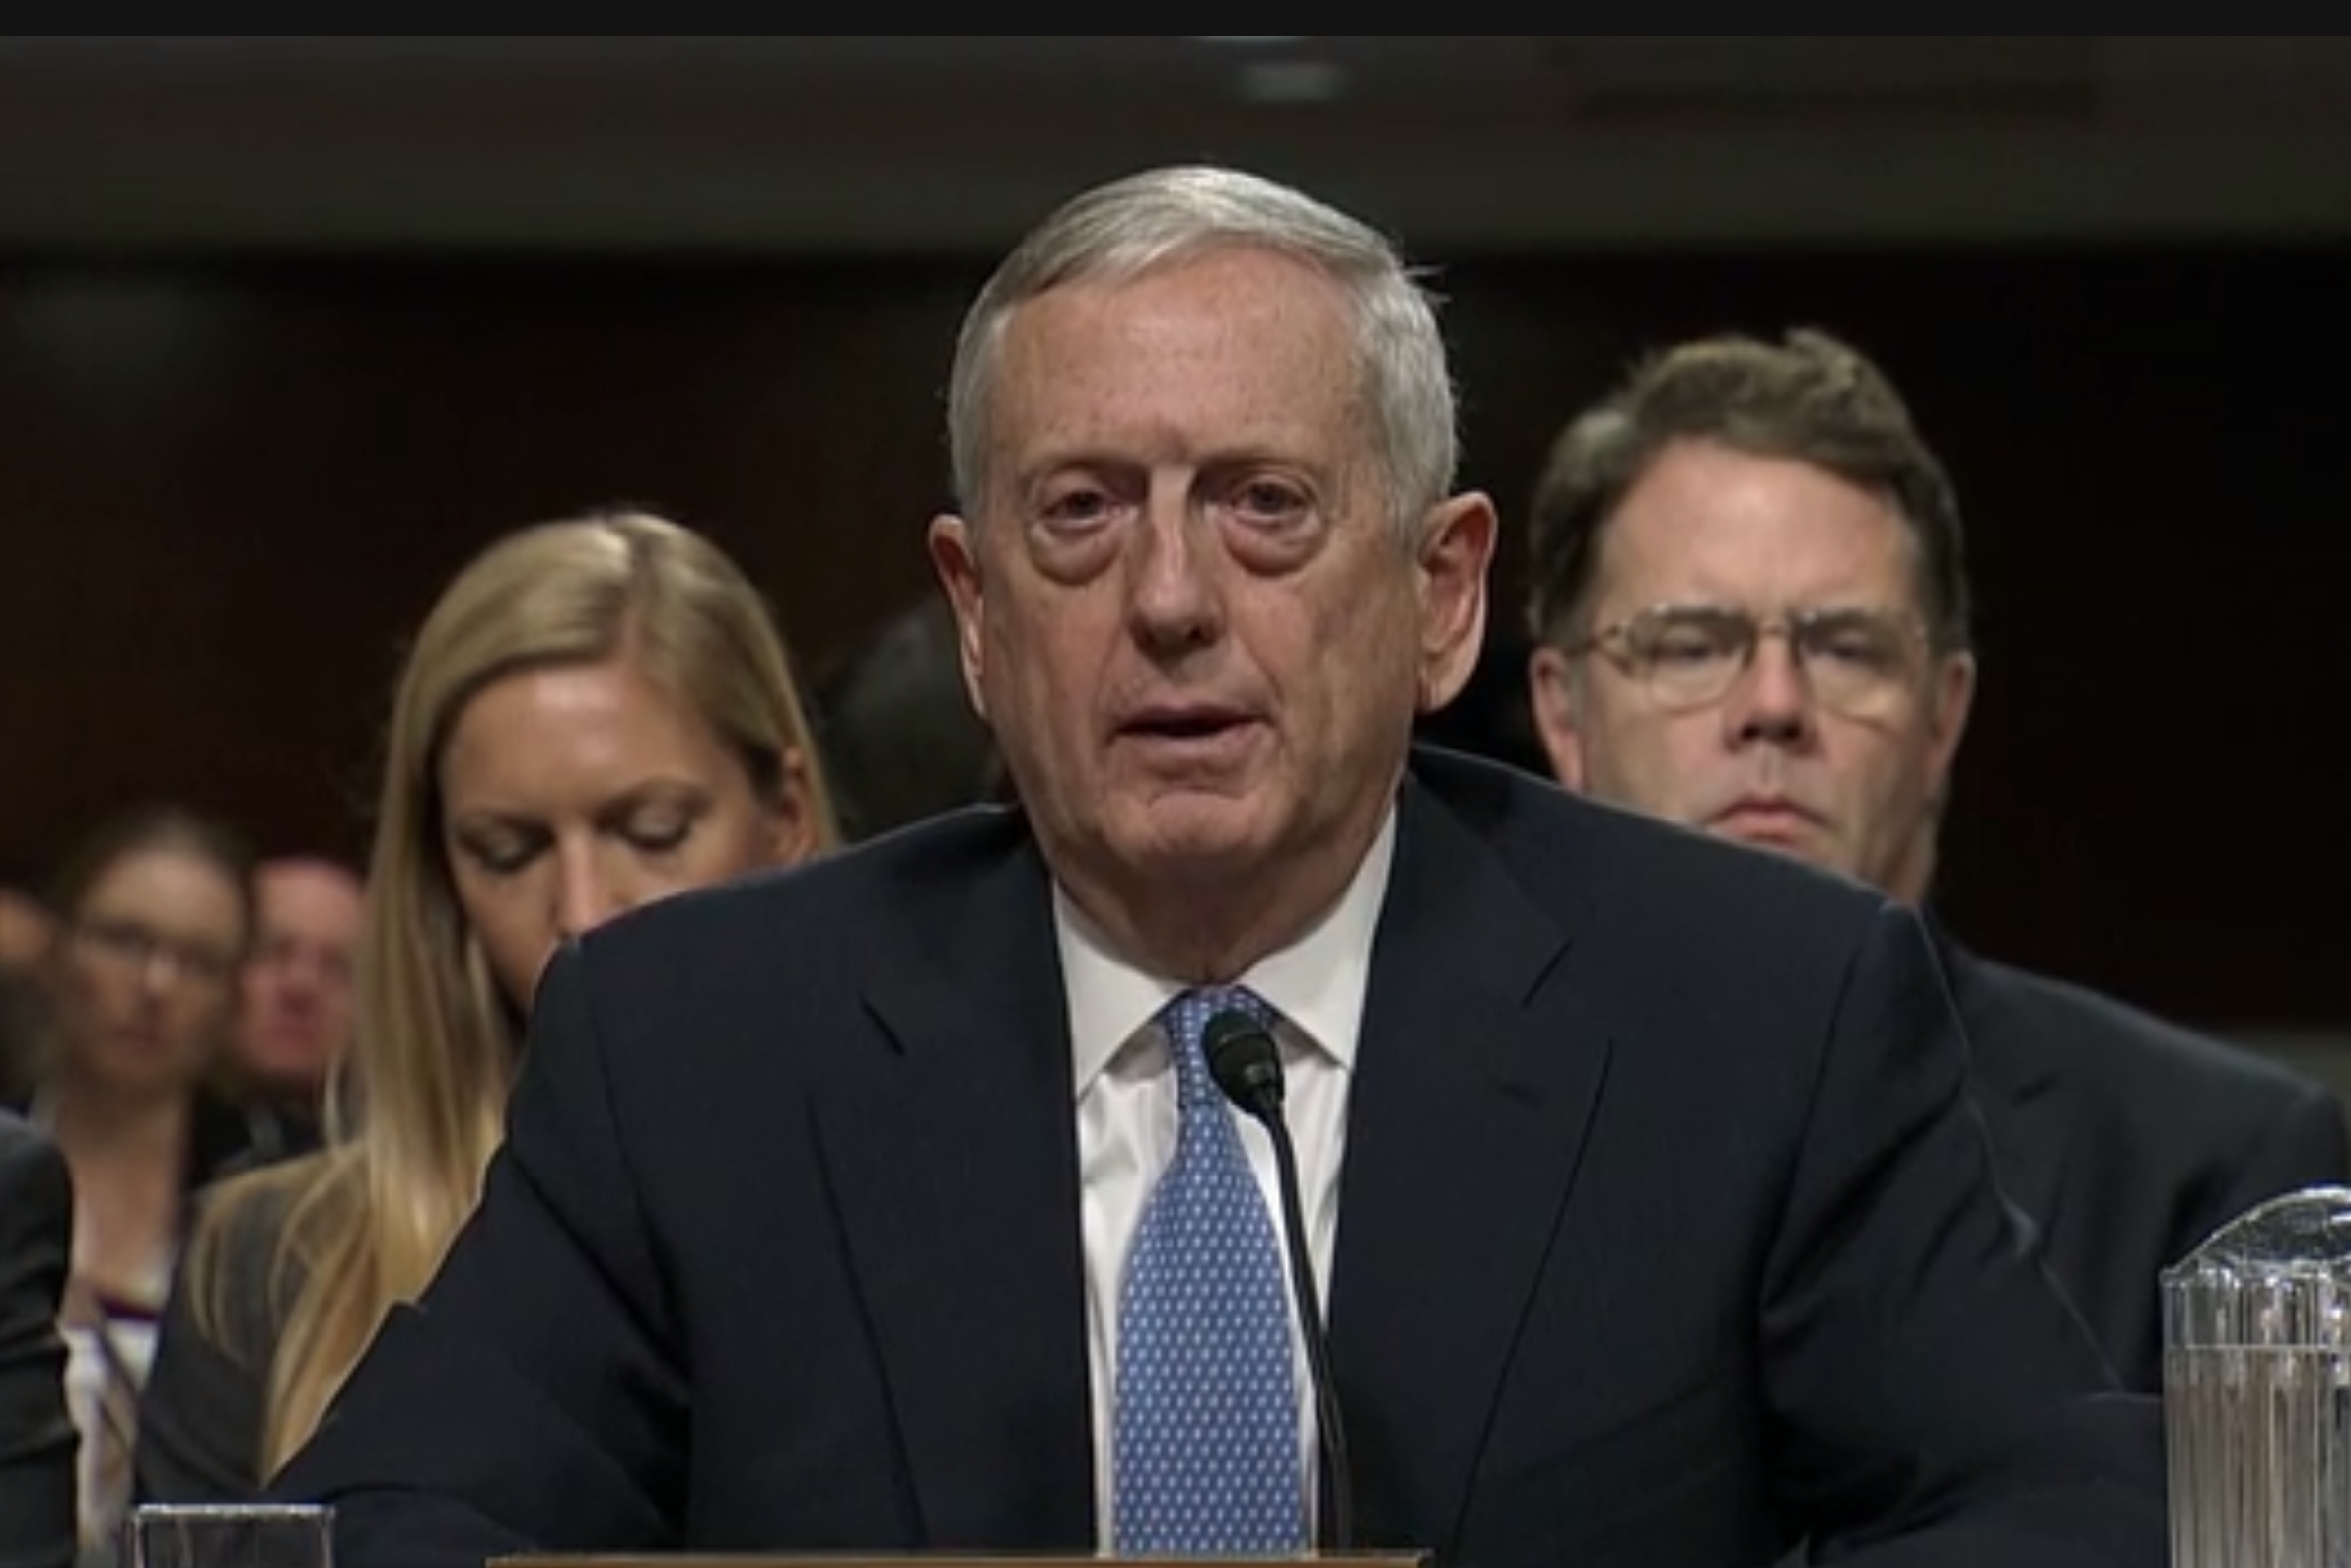 Retired Gen. James Mattis testifying before the Senate Armed Services Committee on Jan. 12, 2015. CSPAN Image